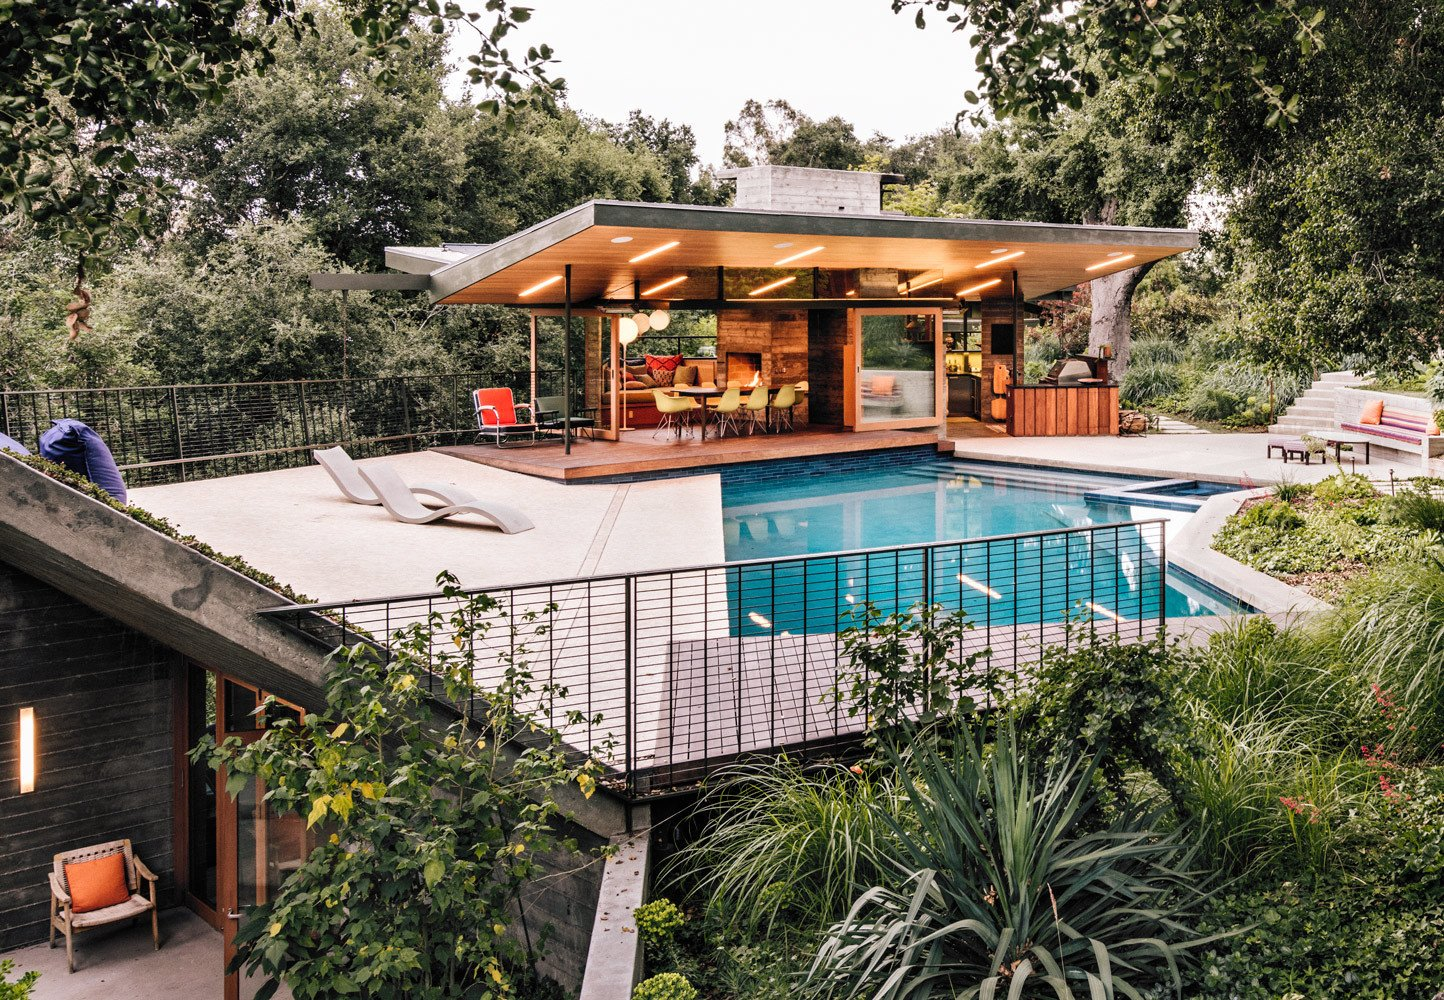 Rising from the edge of the pool deck, a planted overhang shelters a gym and sauna below.  Photo 3 of 4 in Editor's Letter: Make It Modern